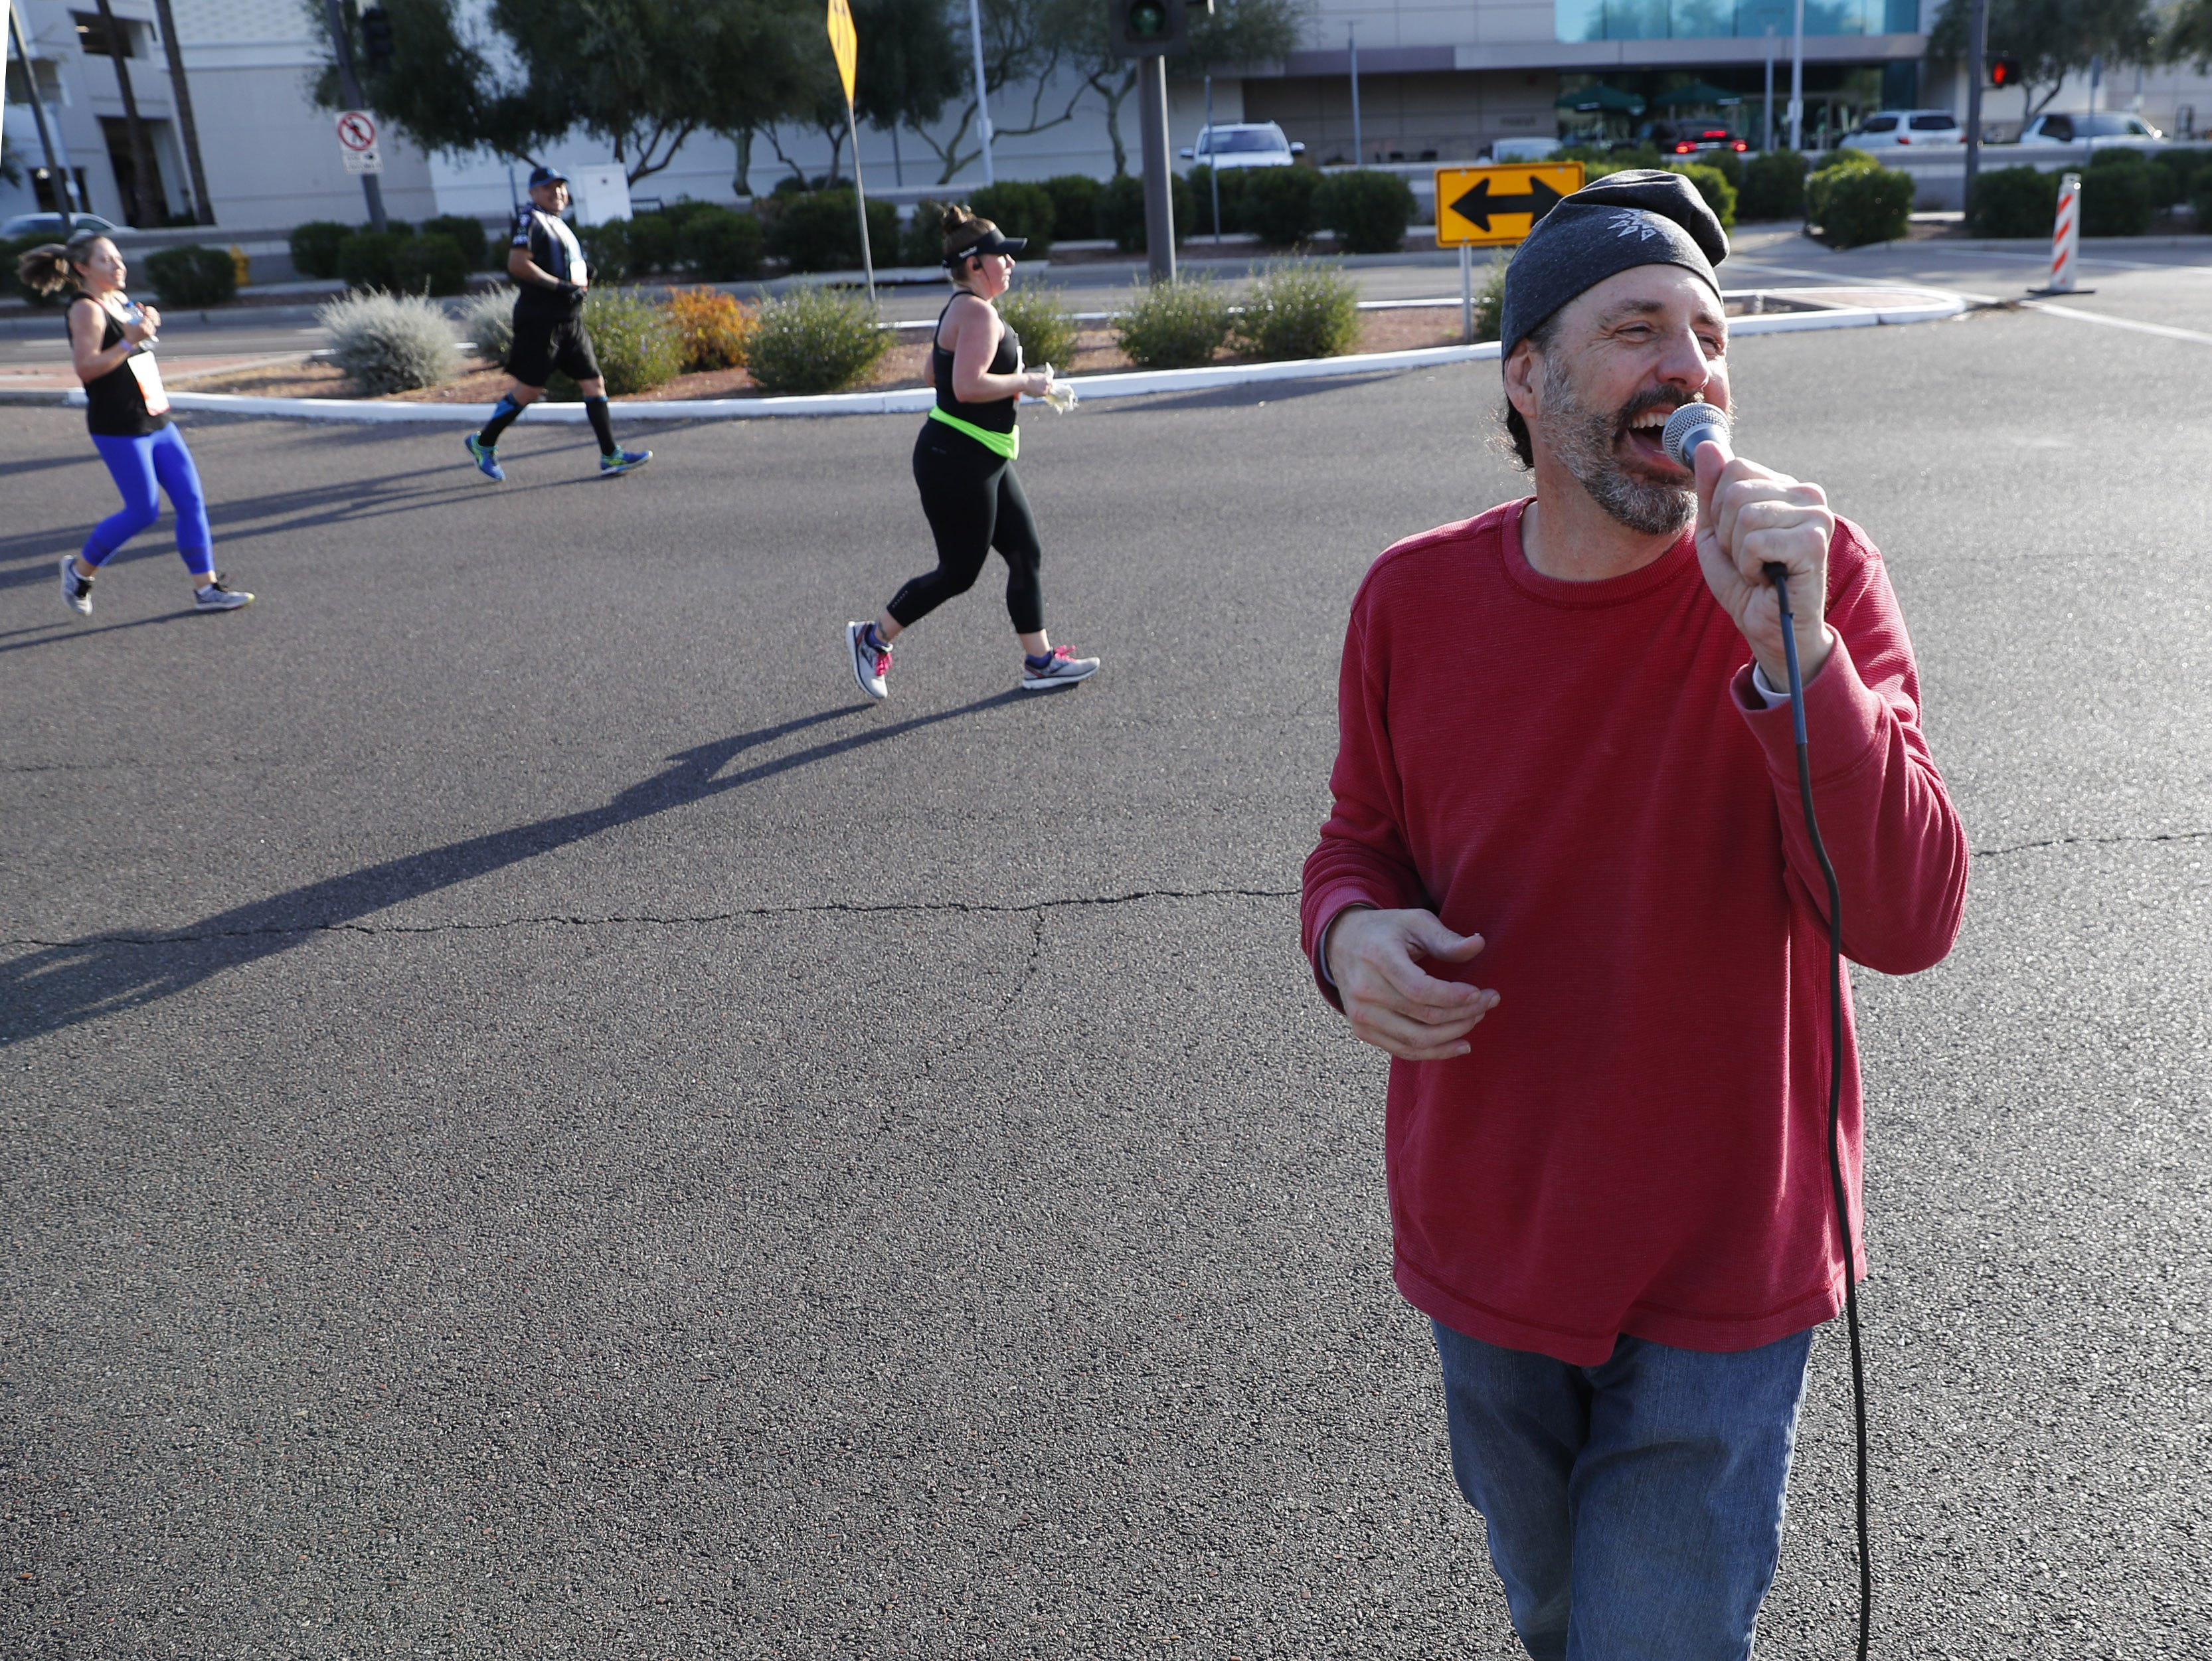 Martin Niner from Junk the Band sings for runners on 24th St. during the Rock 'N' Roll Marathon in Phoenix on Jan. 20, 2019.